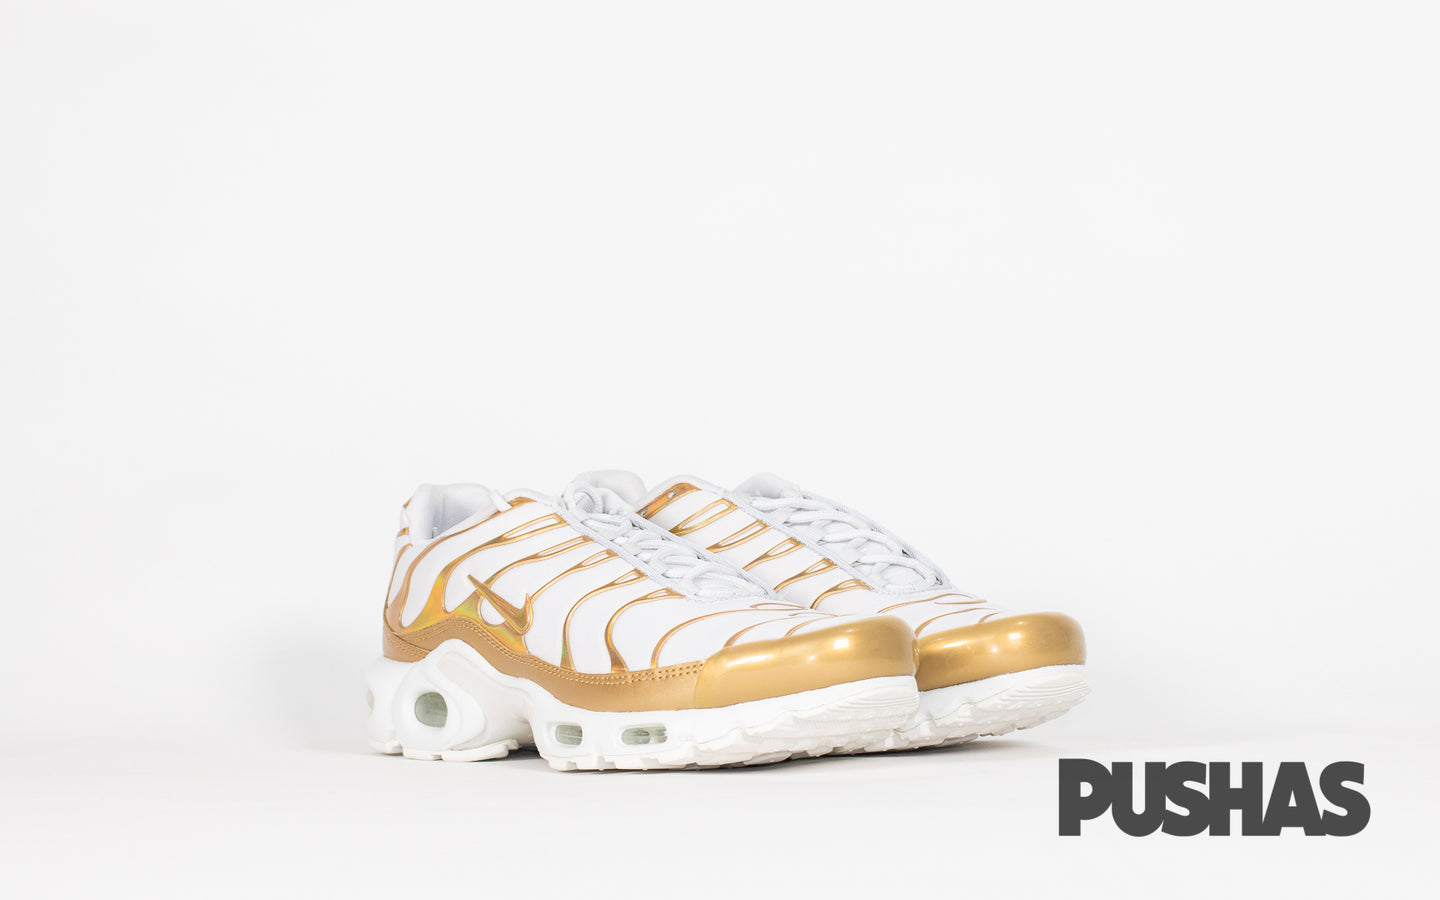 pushas-nike-Air-Max-Plus-TN-W-White-Gold